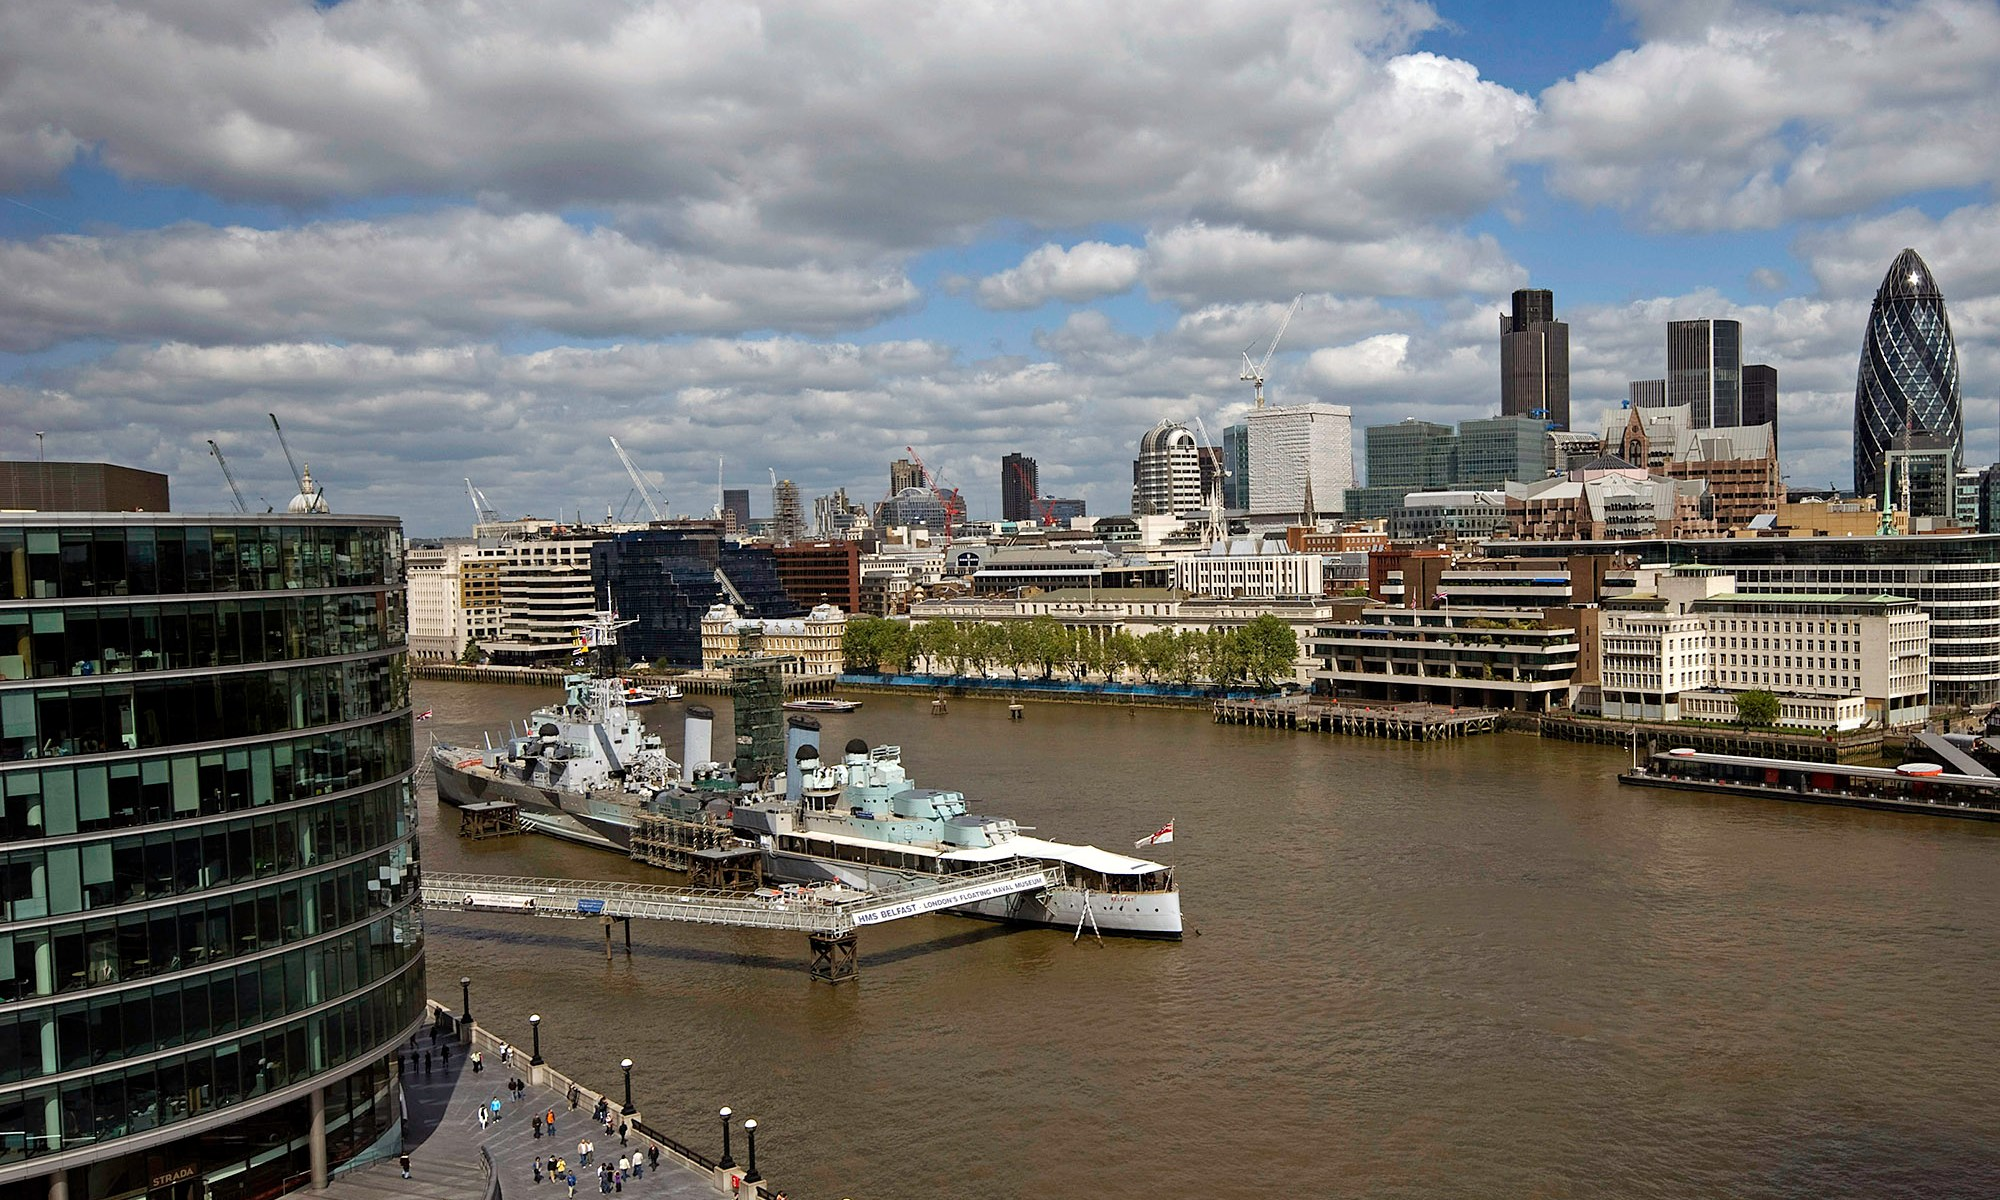 HMS Belfast on the River Thames